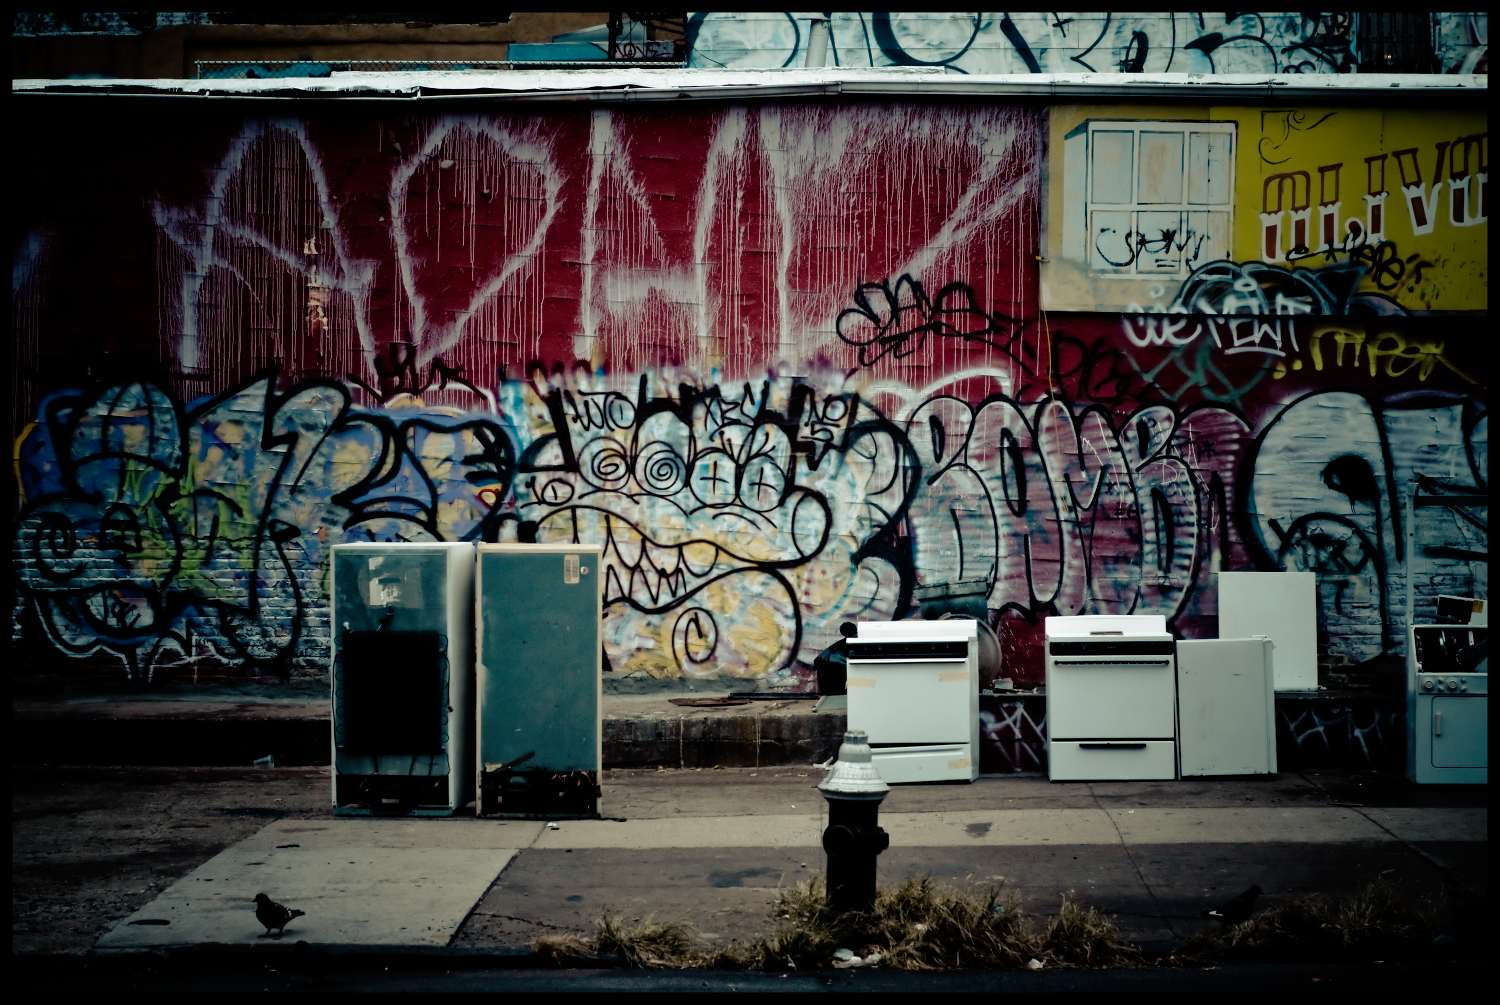 street appliances with graffiti-Exposure.jpg